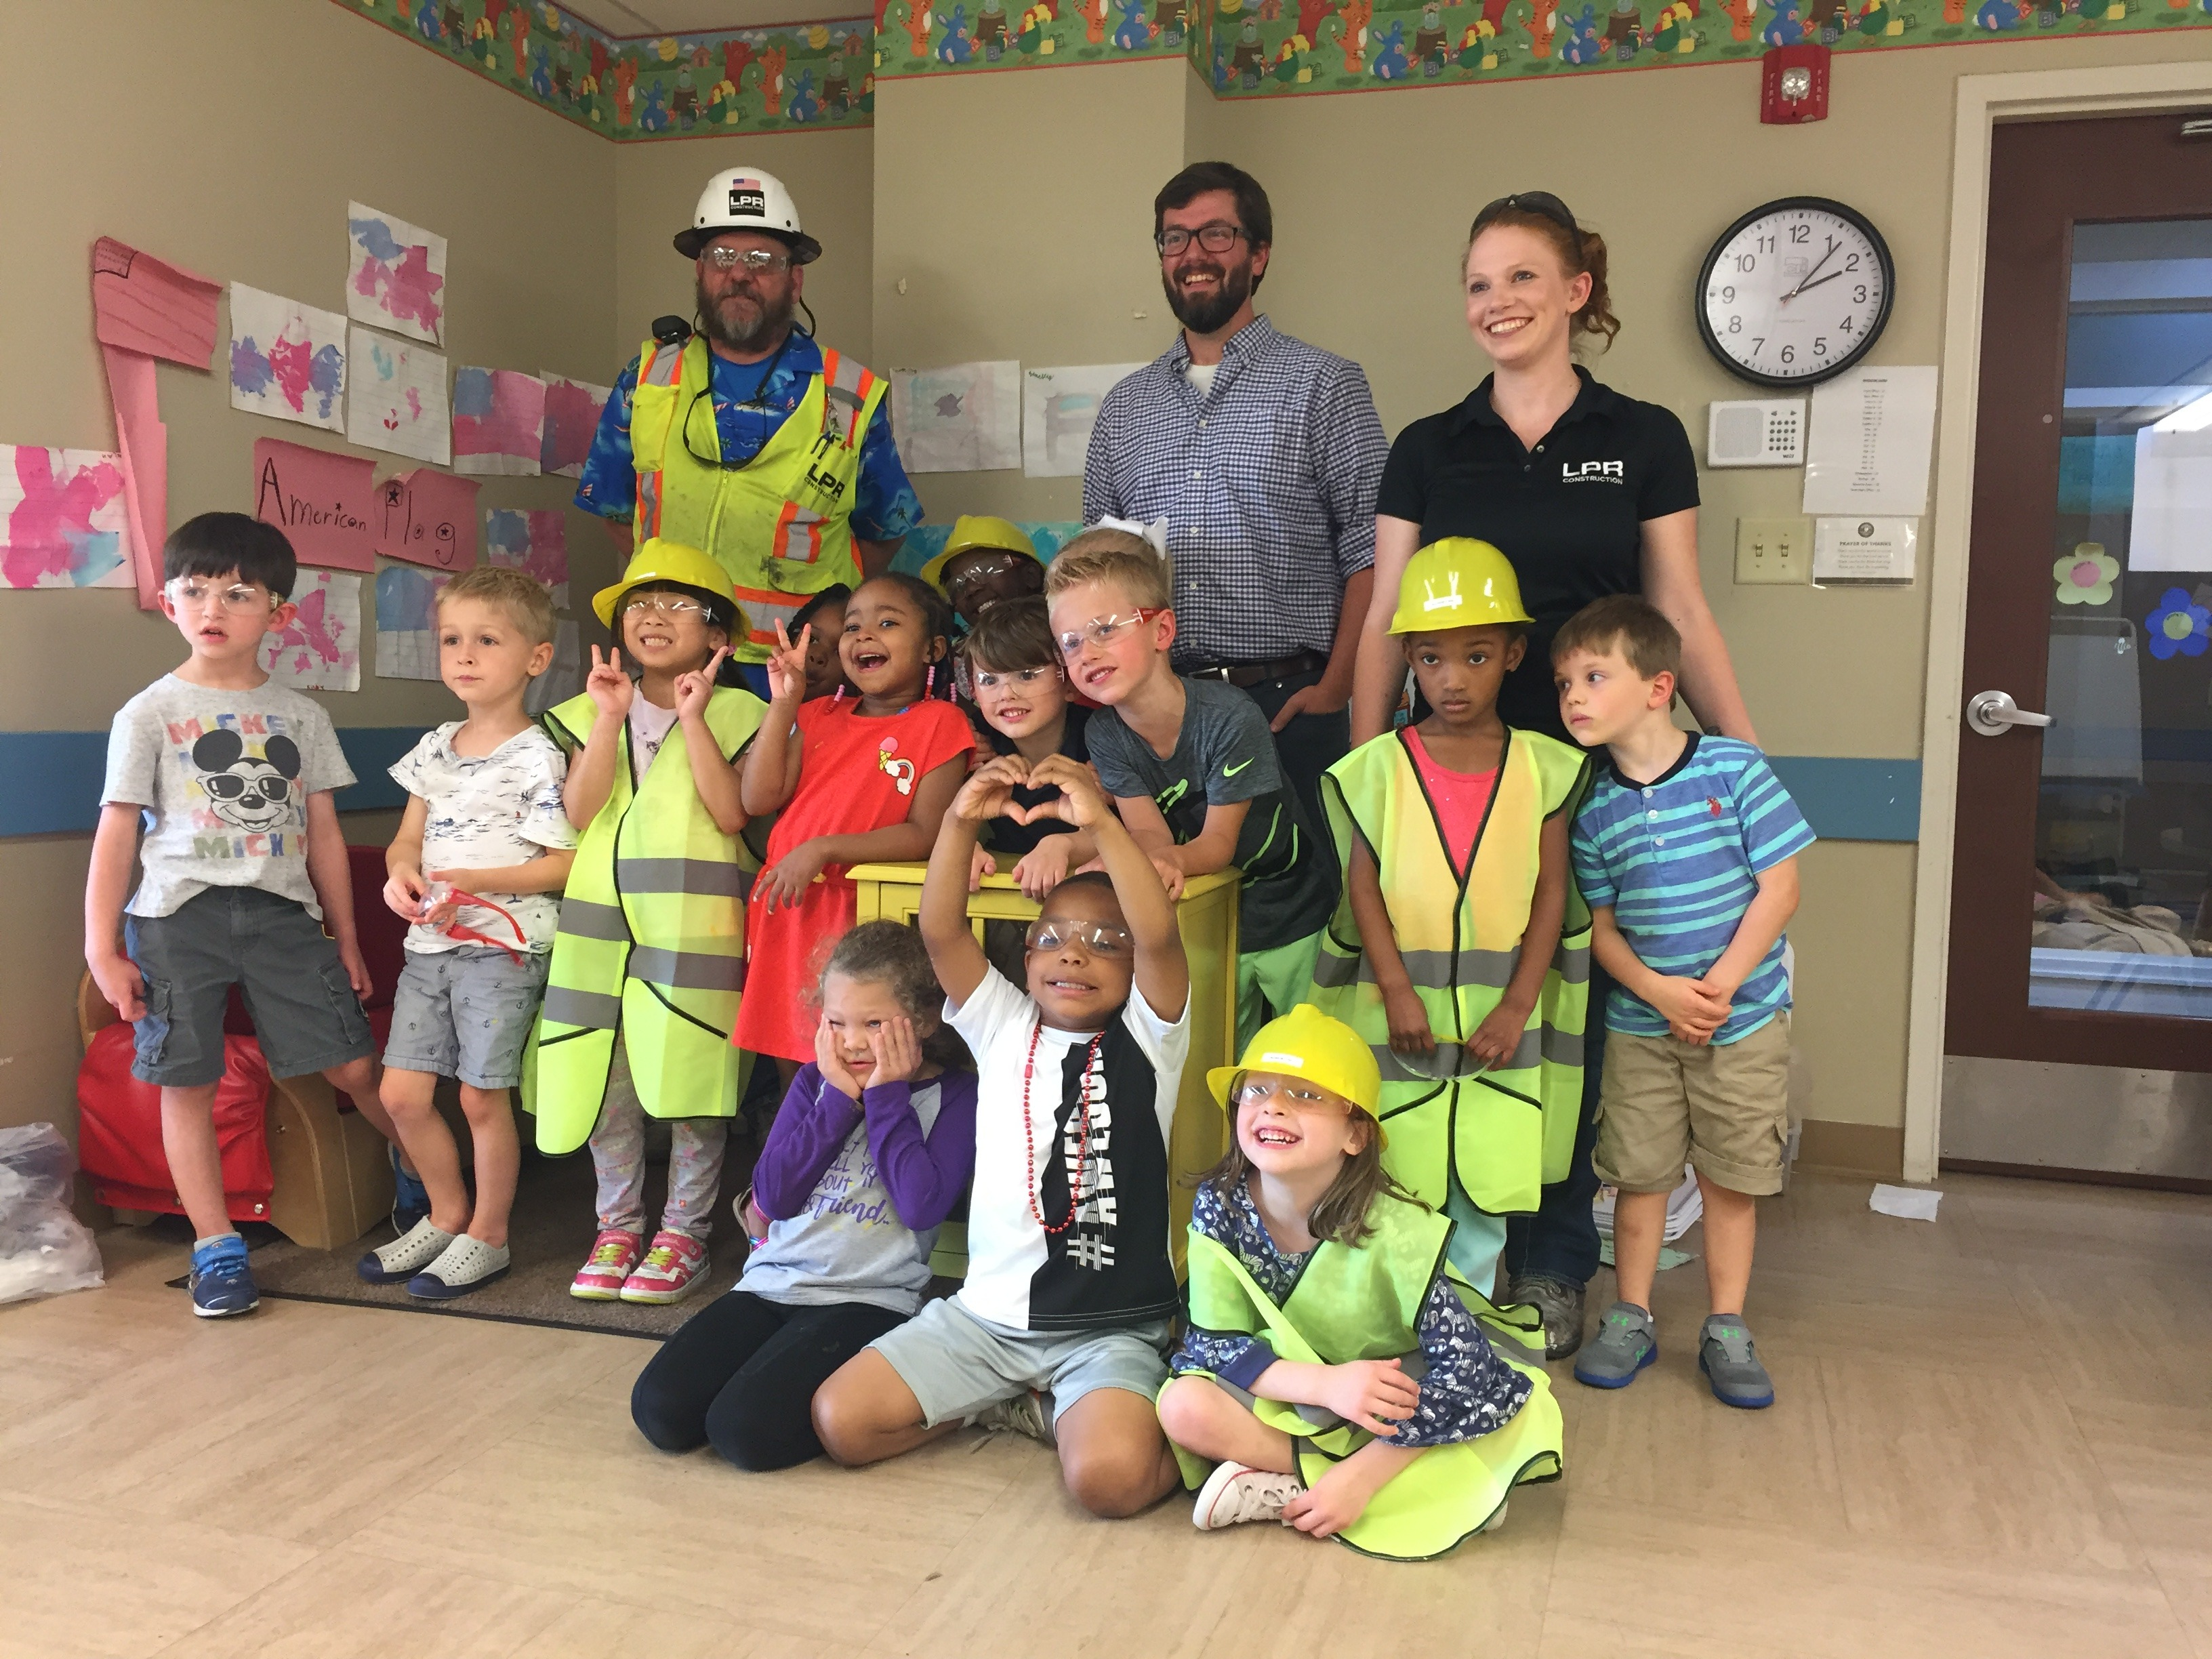 Group photo of children in hard hats